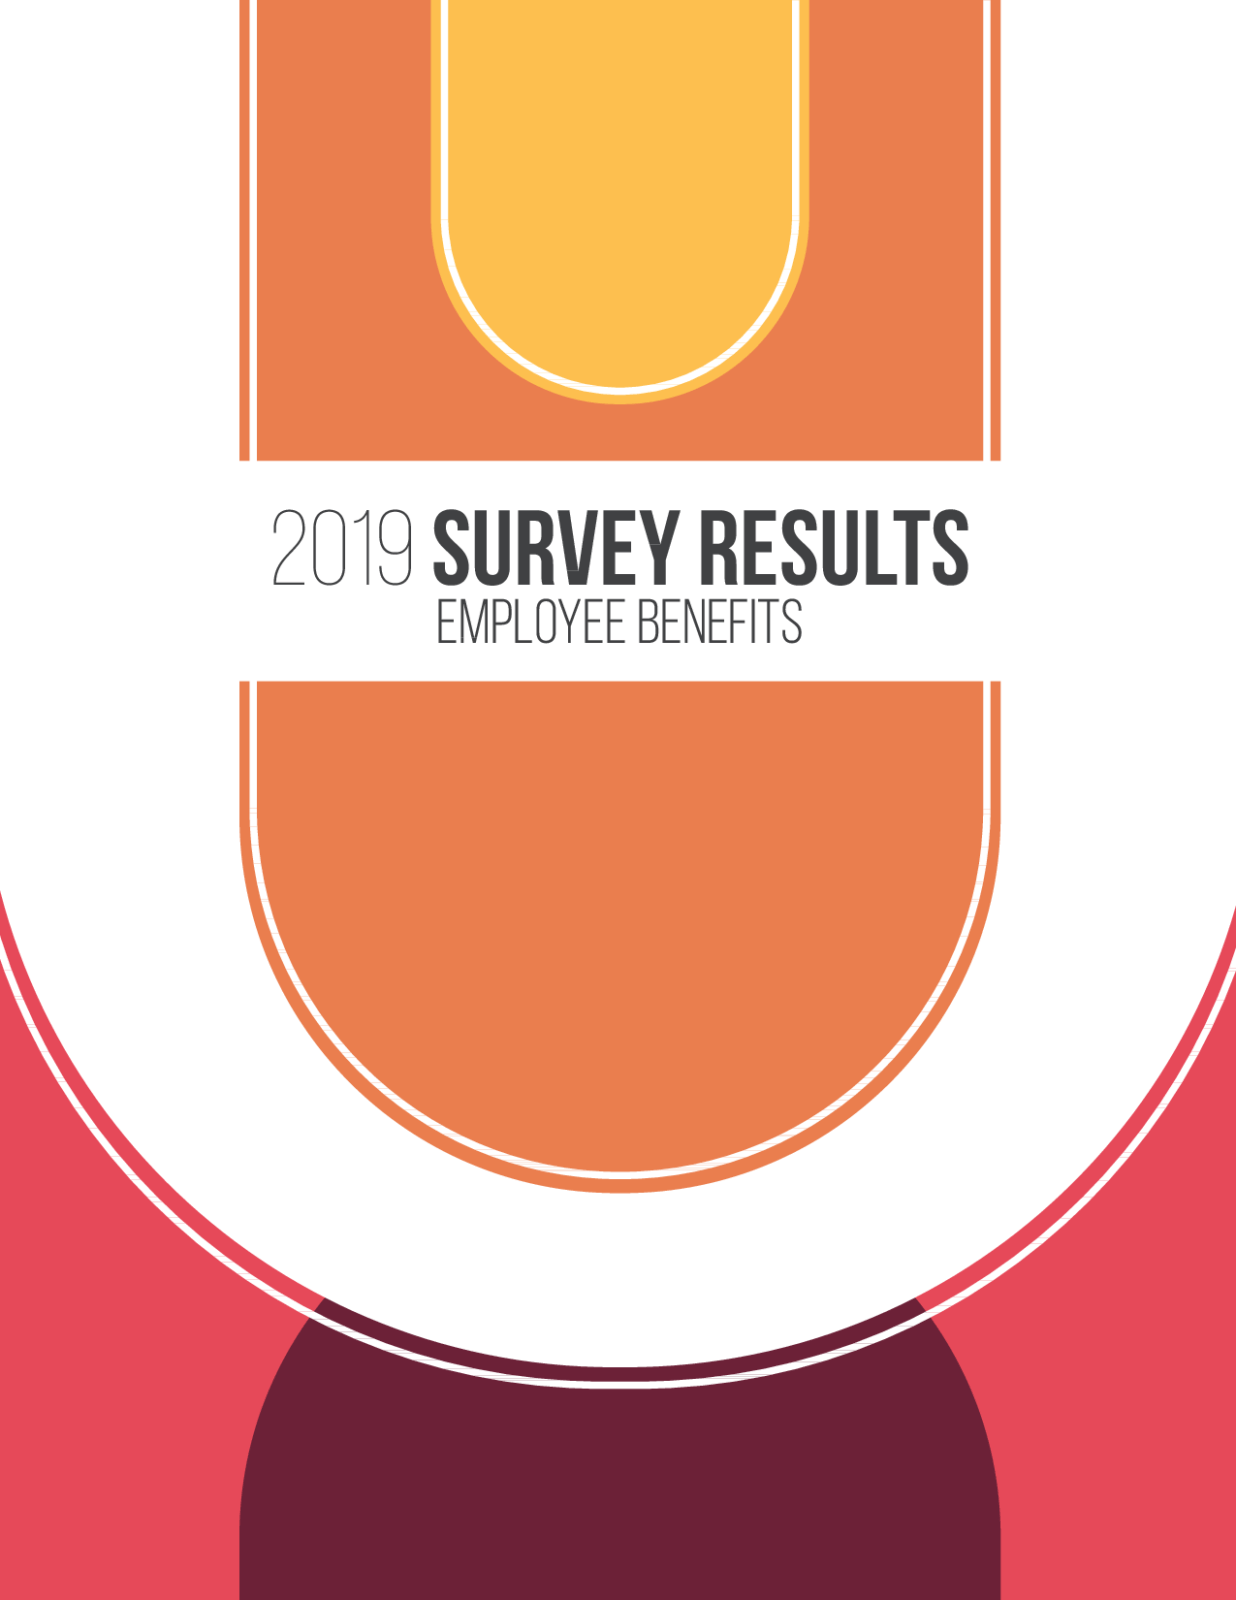 2019 Employee Benefits Survey Results cover